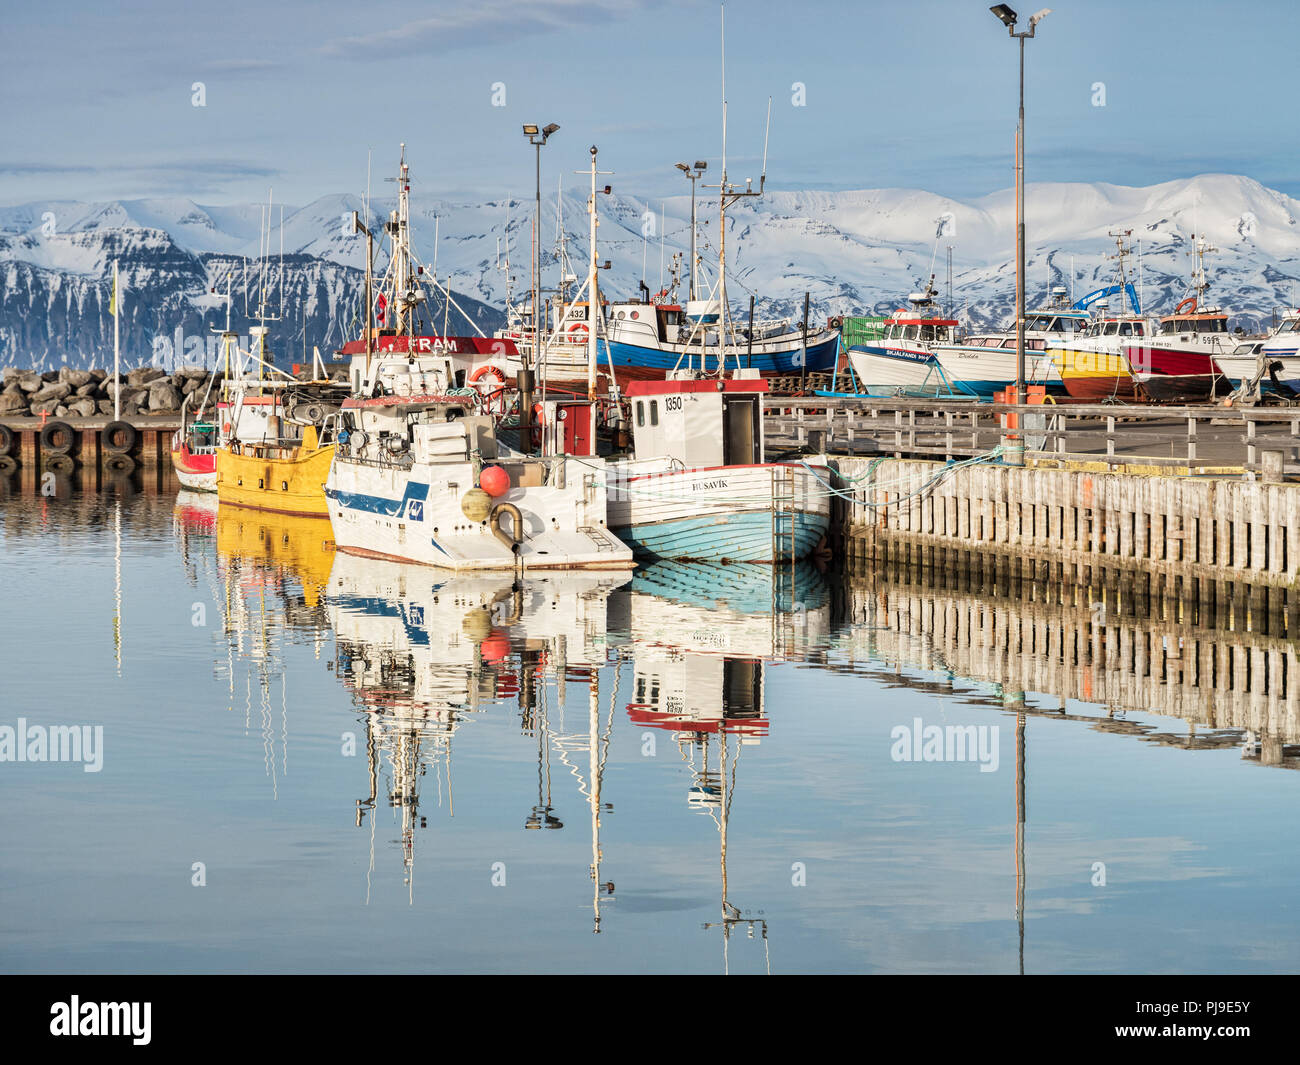 13 April 2018: Husavik, North Iceland - Fishing boats in the harbour on a bright spring day. - Stock Image